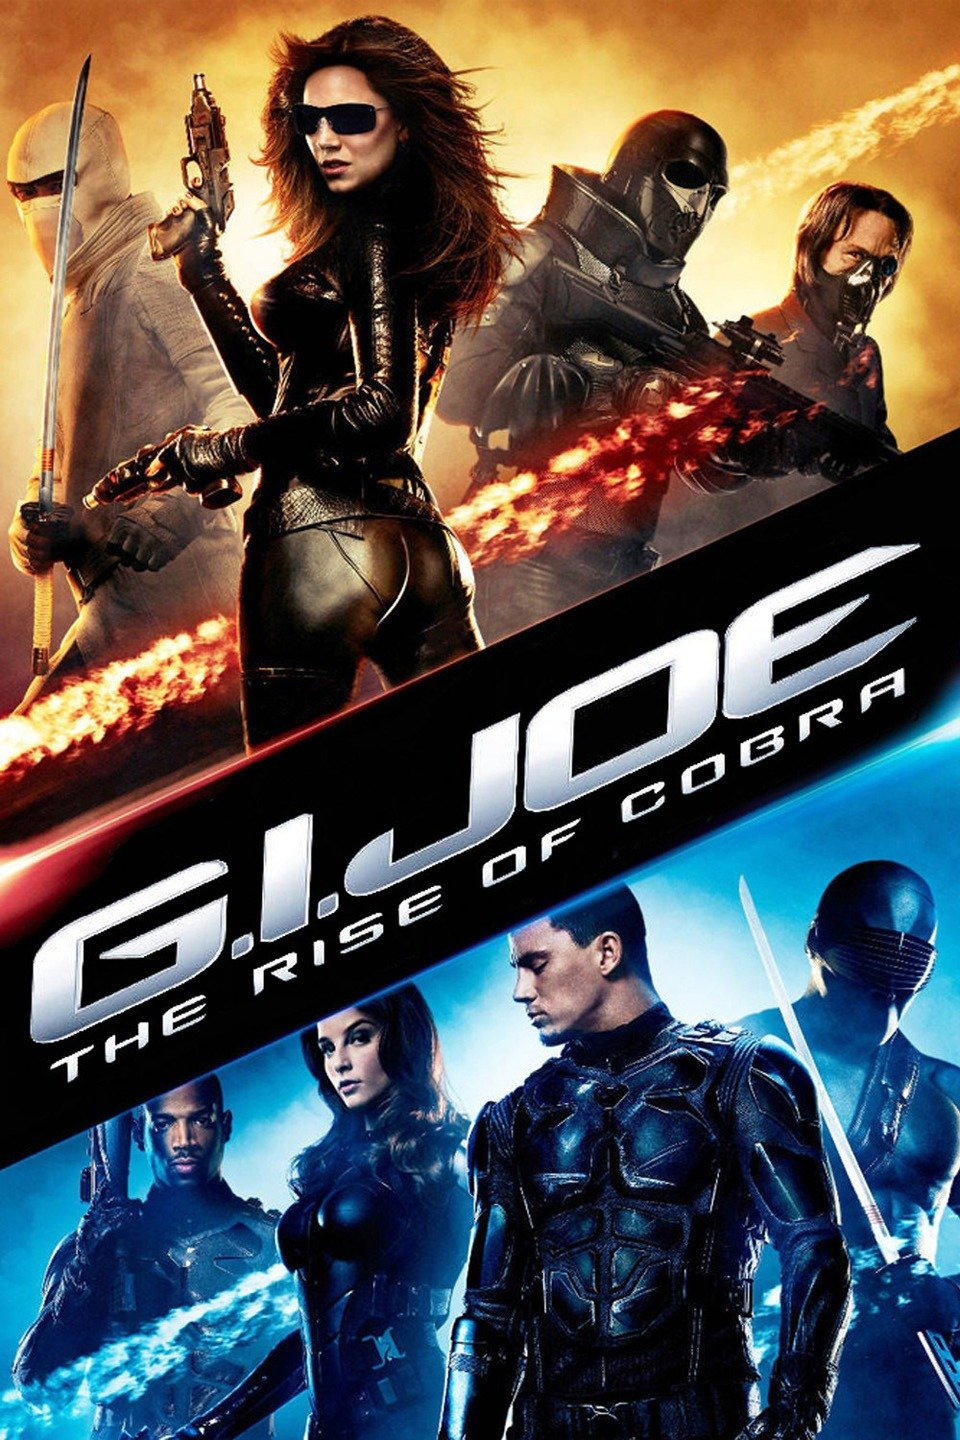 G.I. Joe: The Rise of Cobra-G.I. Joe: The Rise of Cobra